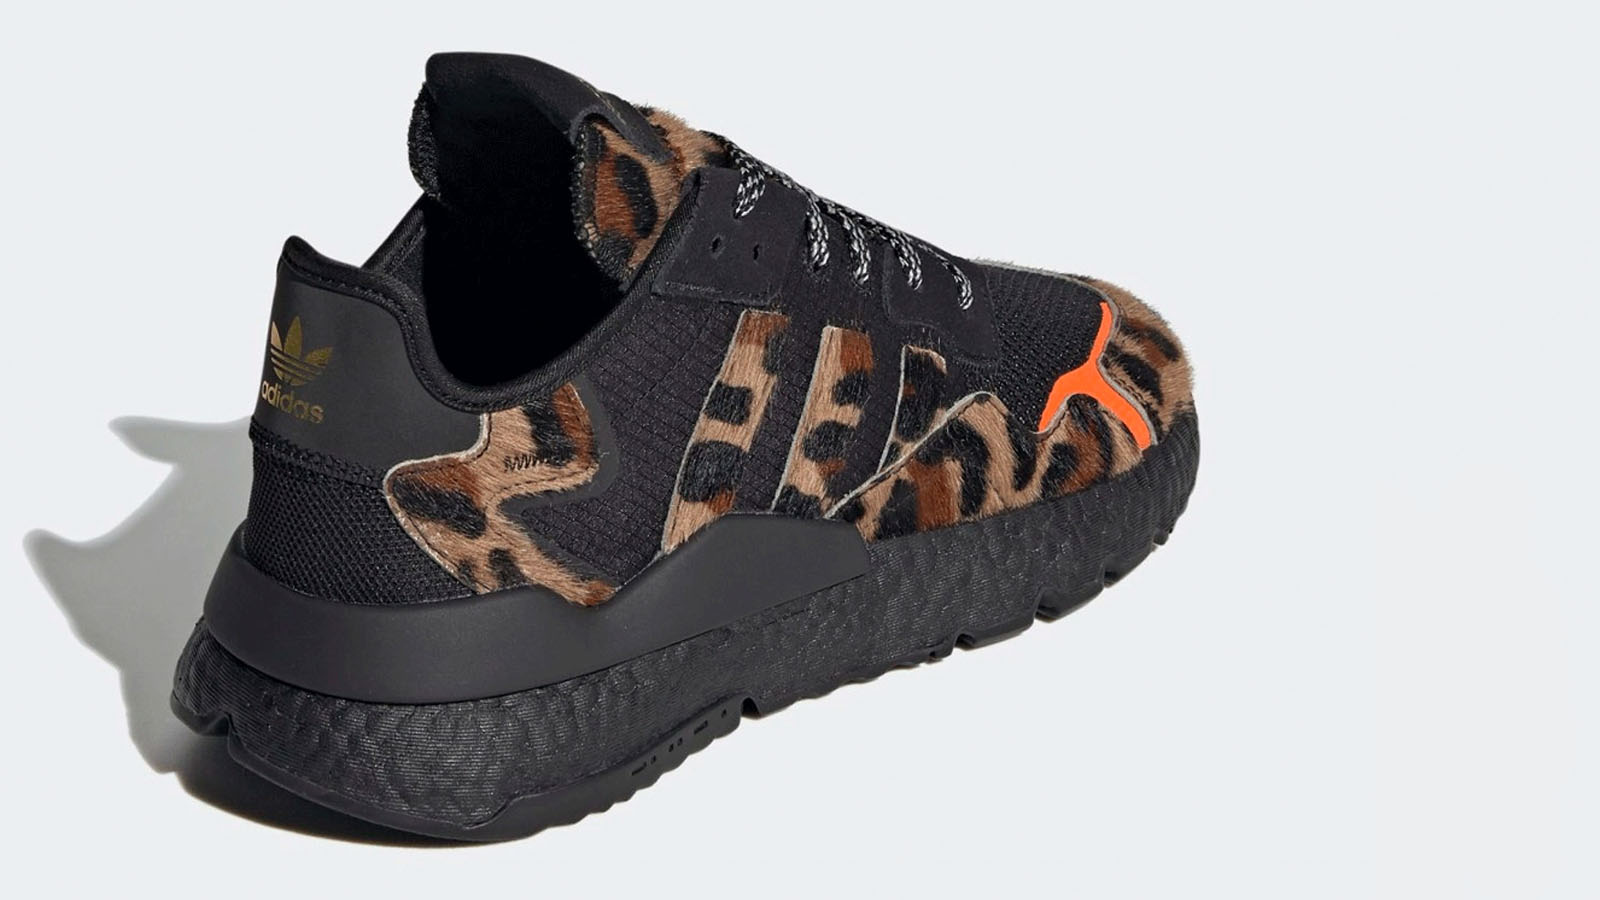 uptown deluxe nite jogger adidas